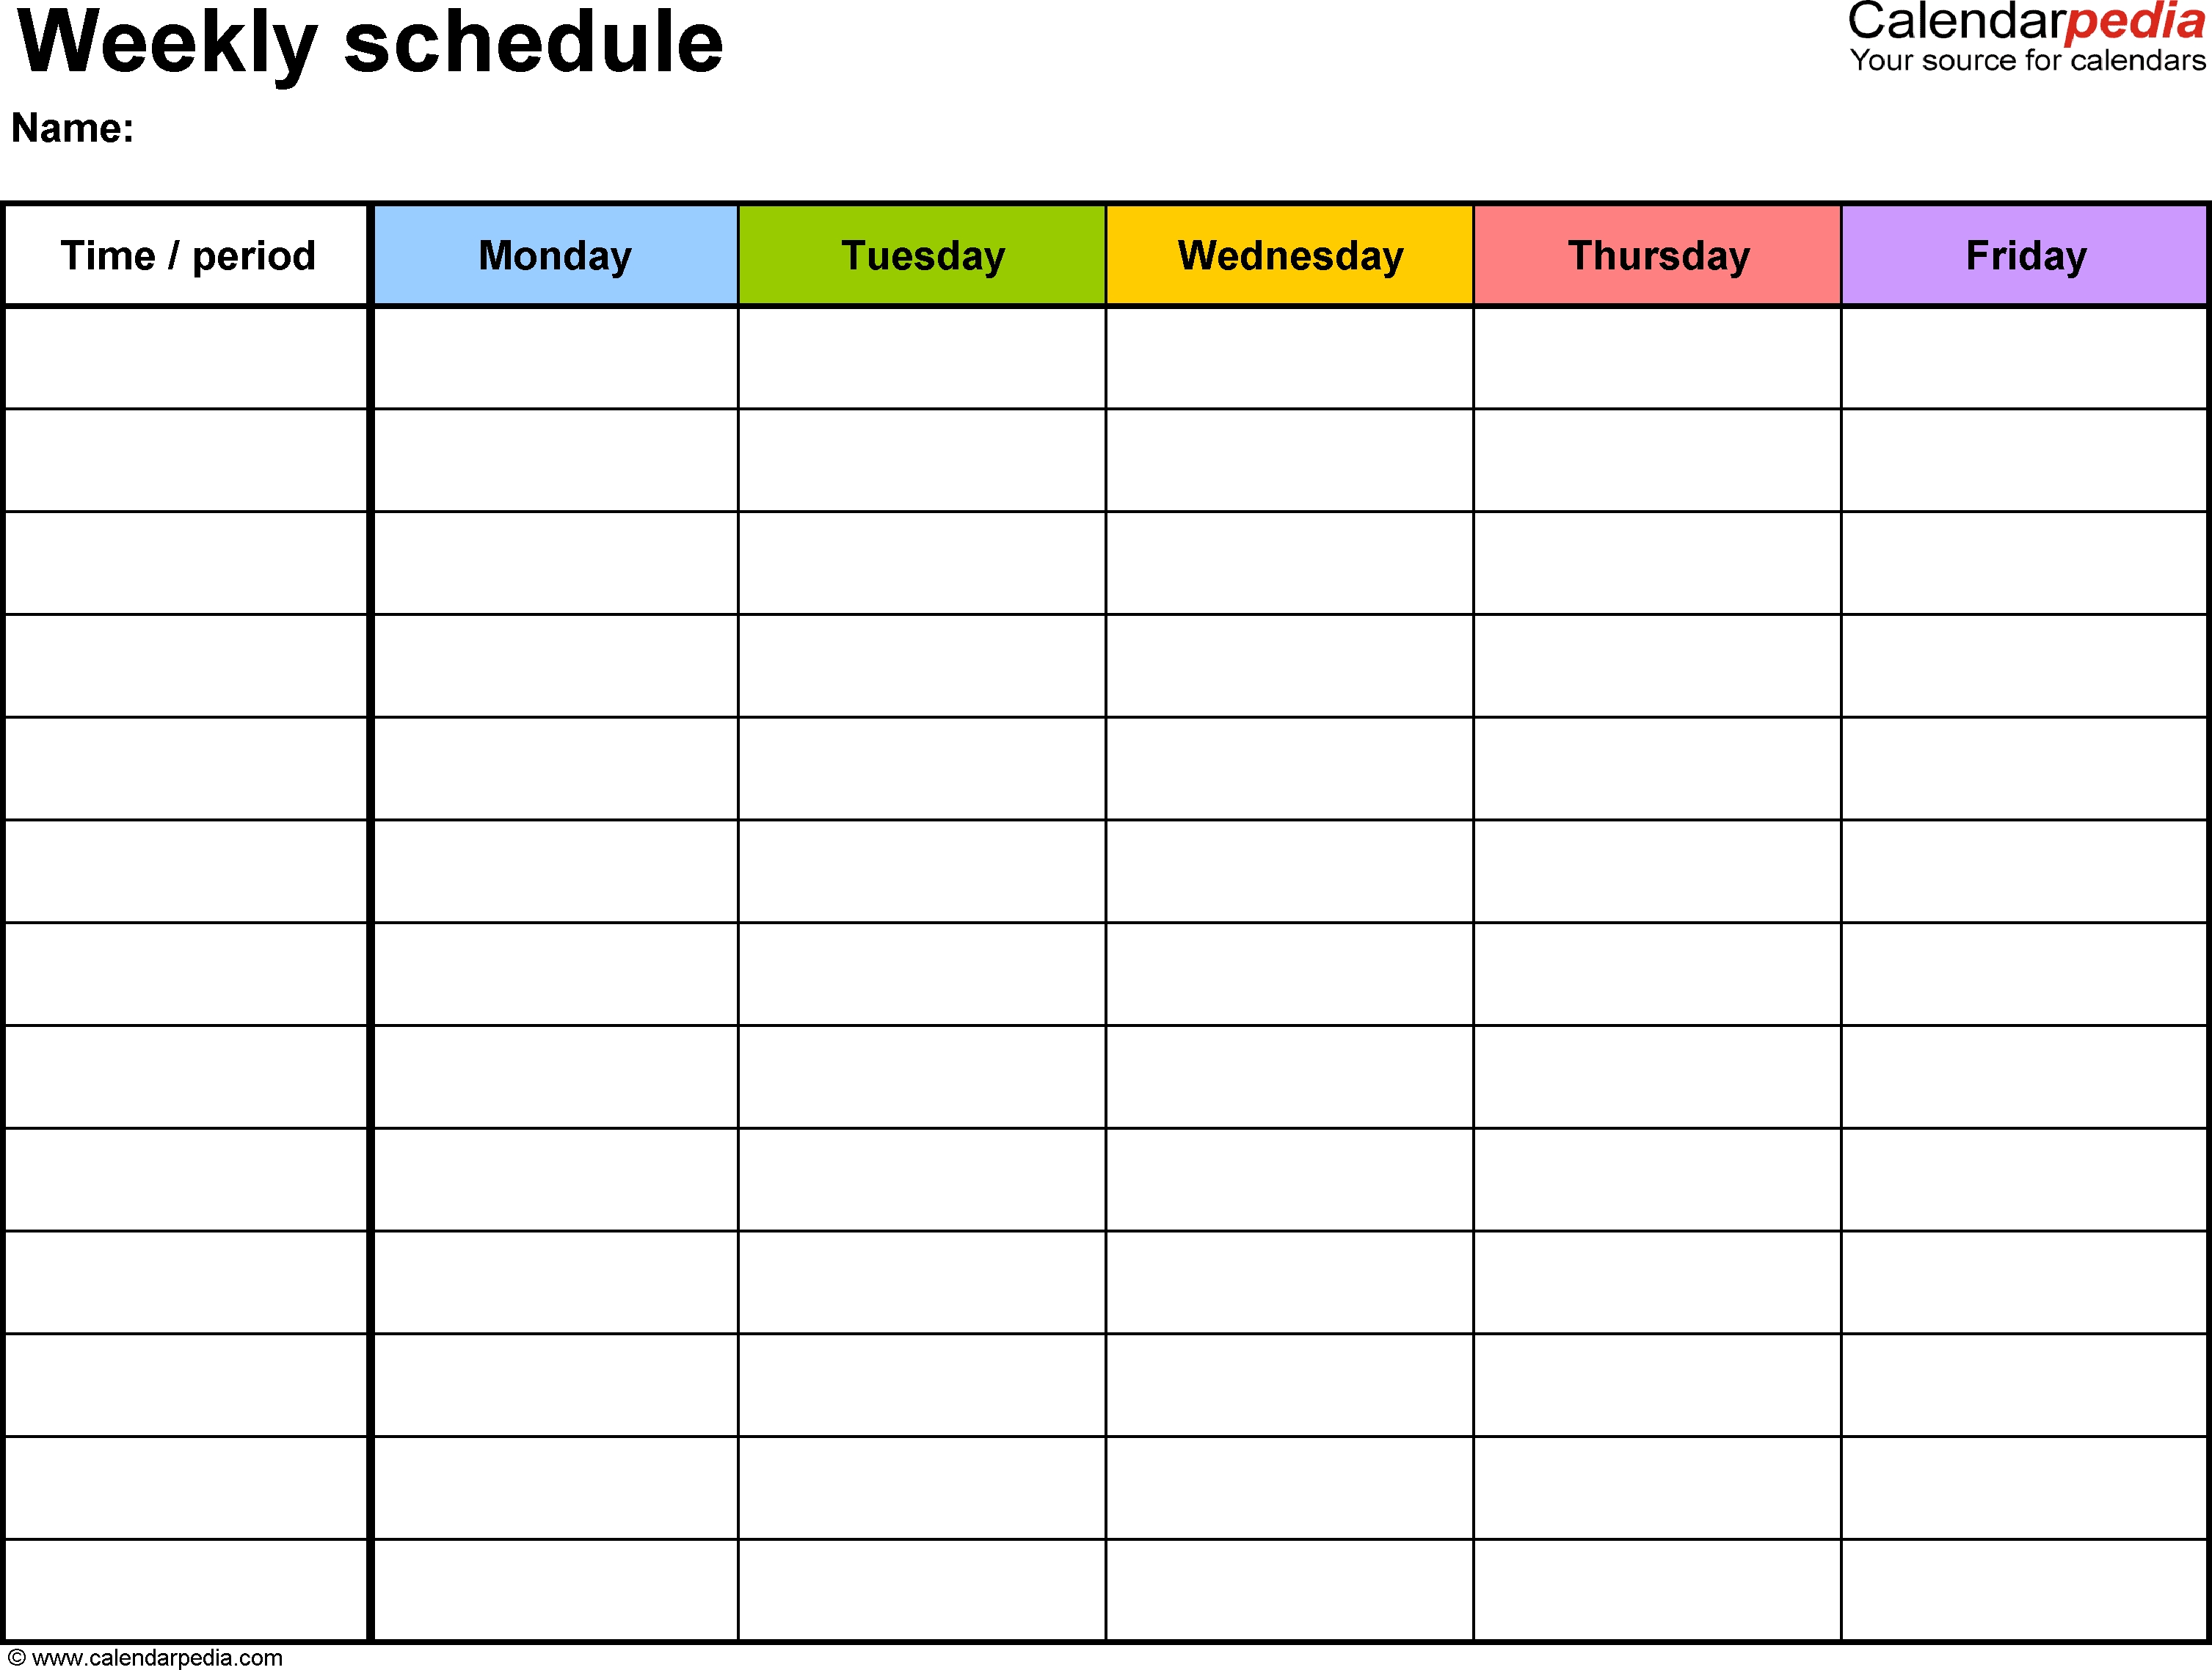 Free Weekly Schedule Templates For Excel - 18 Templates intended for Week Five Date Calendars Templates